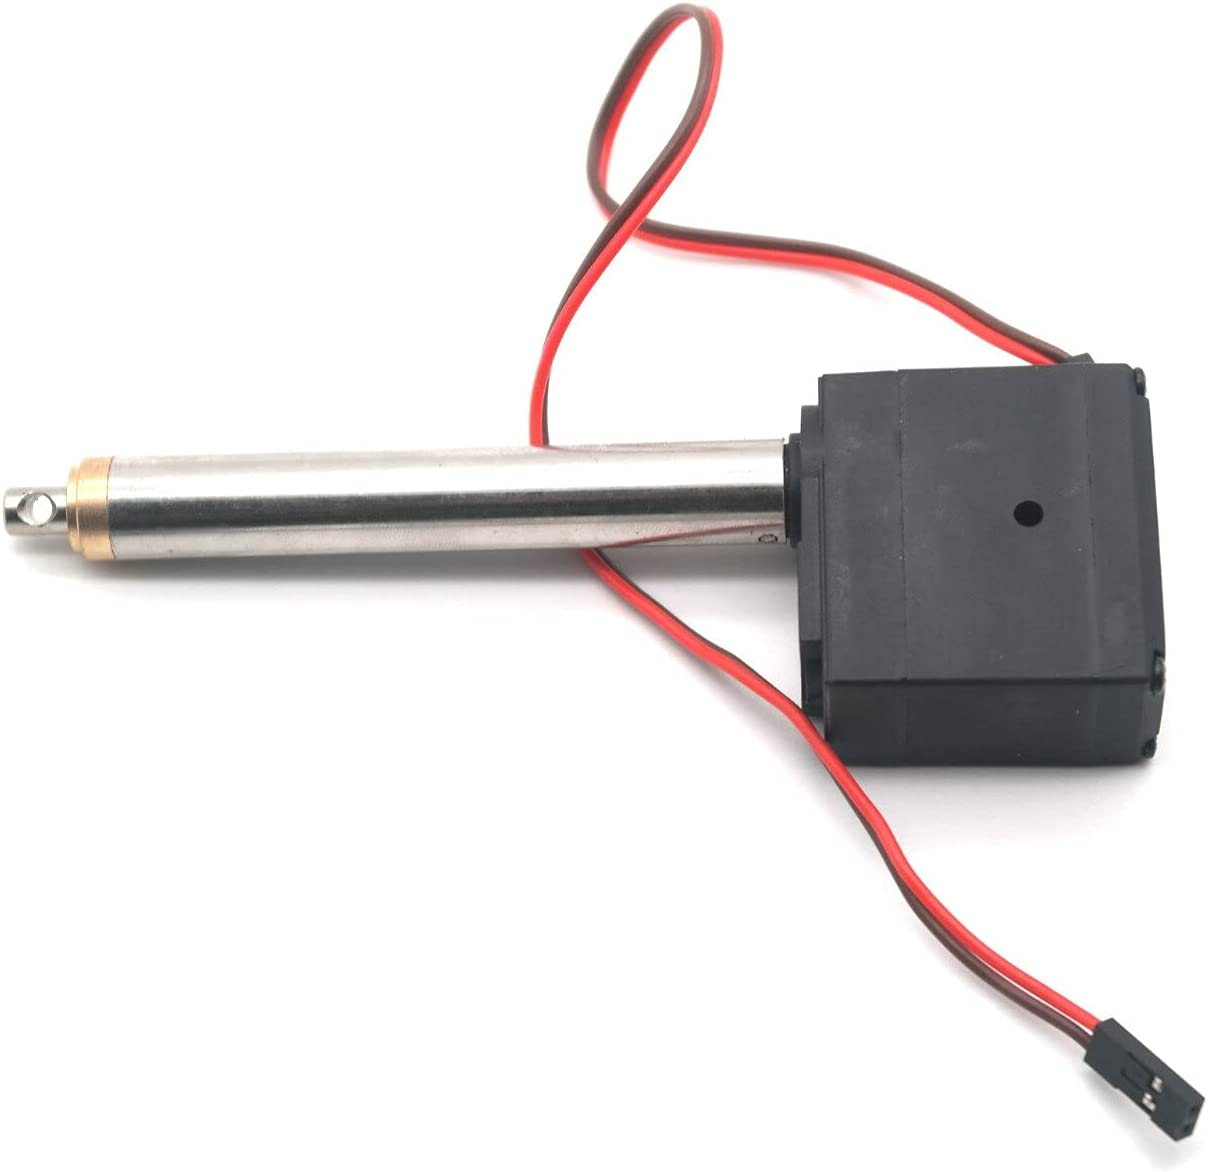 Youmine Upgrade Metal Arm Driving Servo 1550 Max 62% OFF Parts HuiNa store 159 for